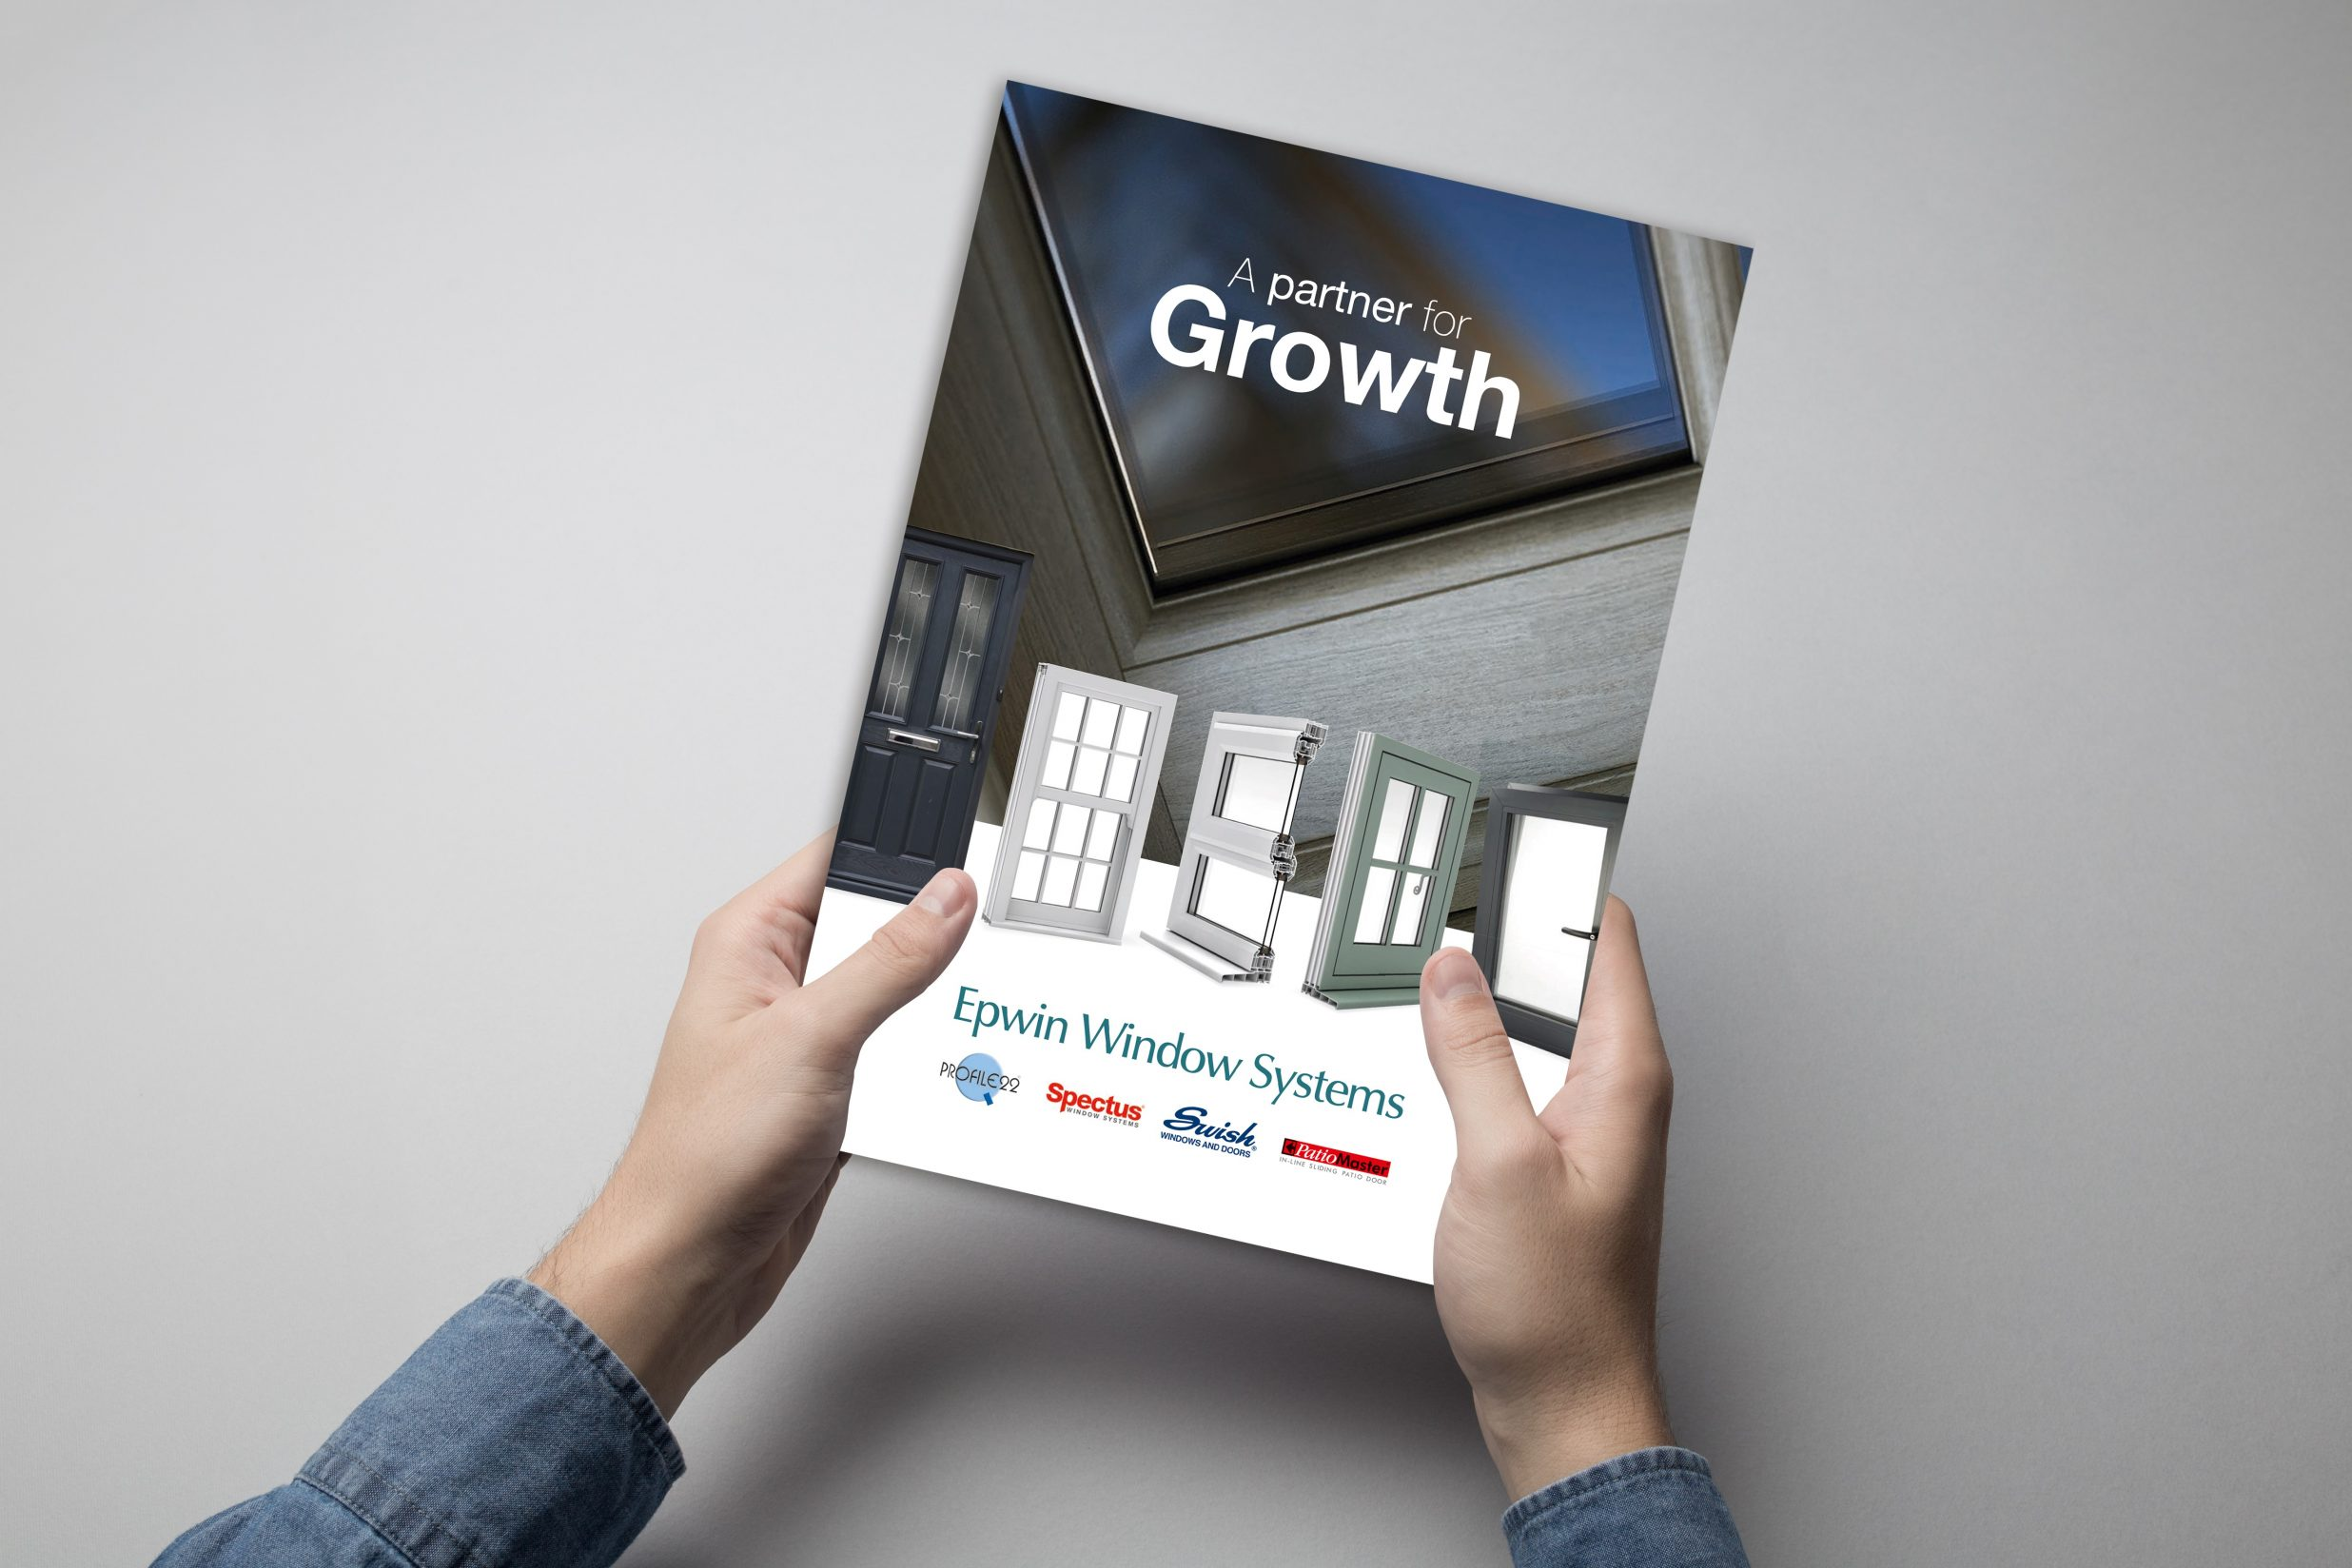 Epwin Window Systems is a partner for growth - Profile 22